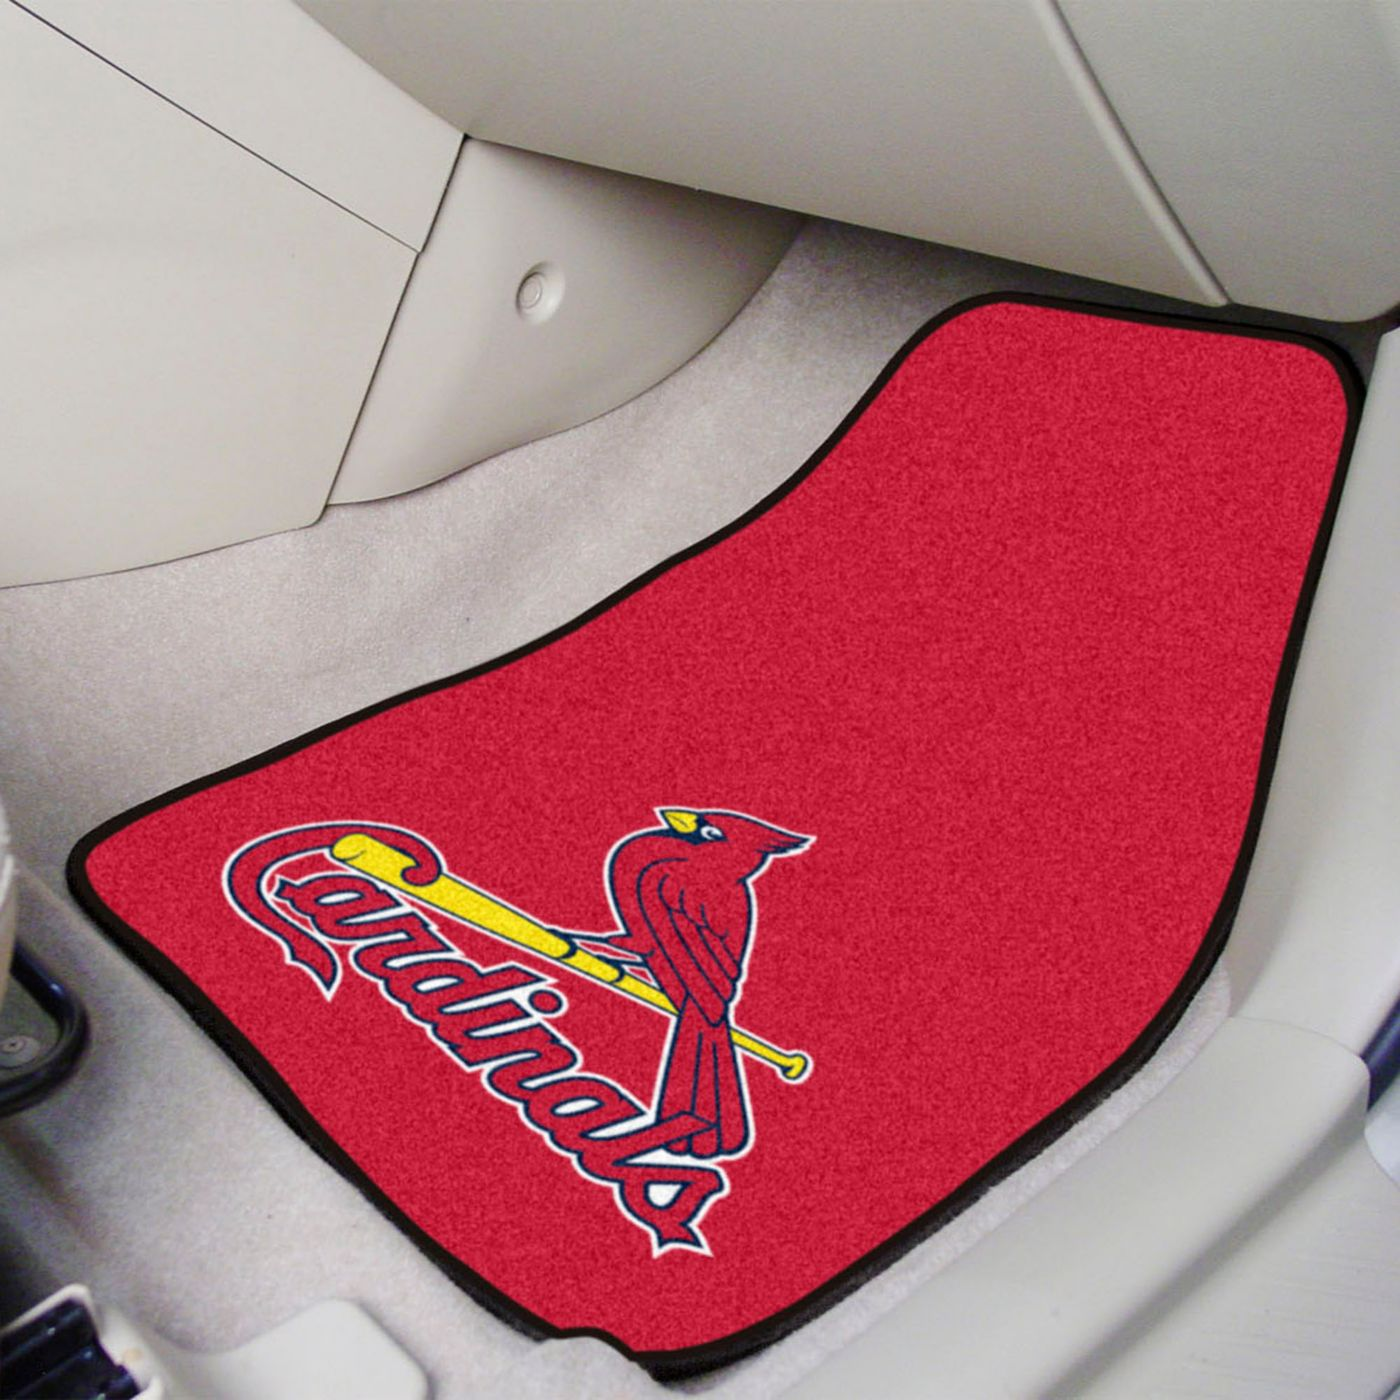 FANMATS St. Louis Cardinals Printed Car Mats 2-Pack